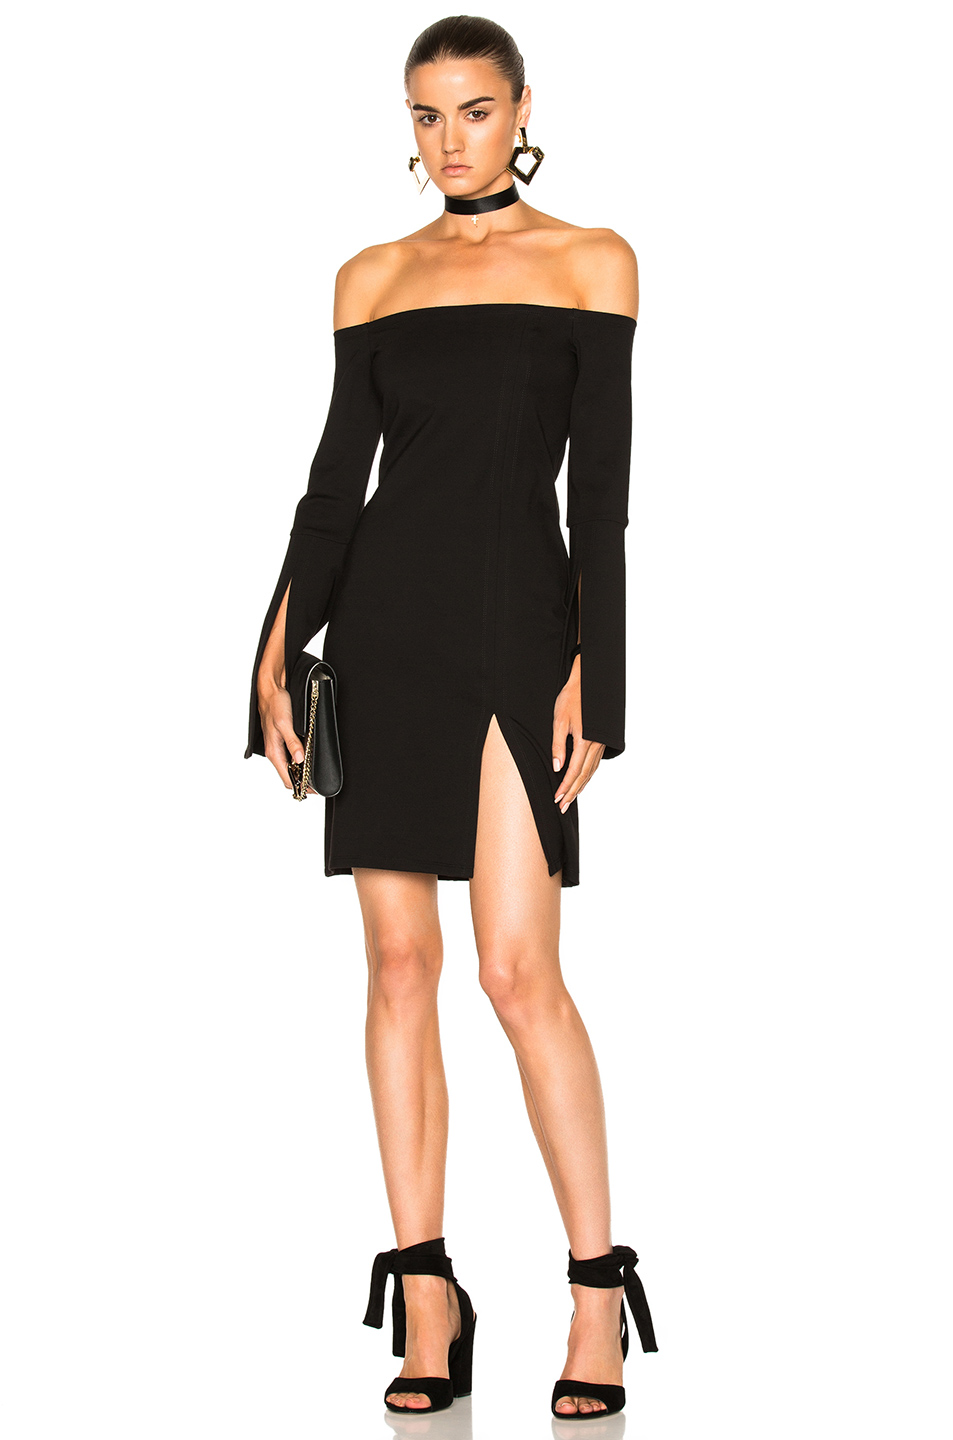 Alexis Sterre Dress in Black